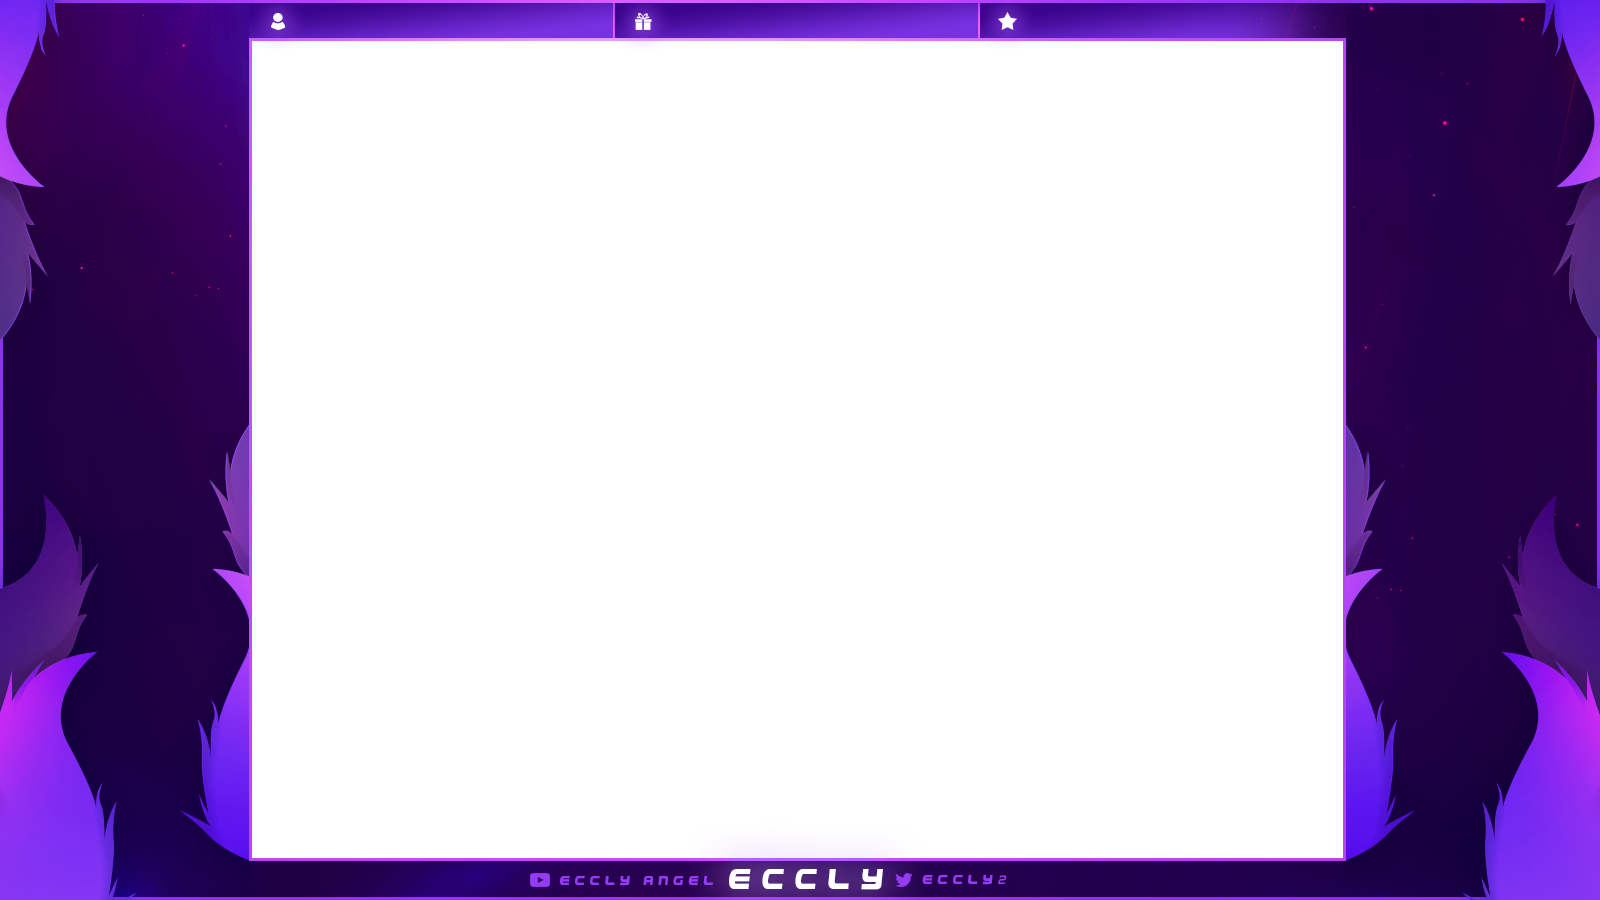 overlay with pruple nuances and flames